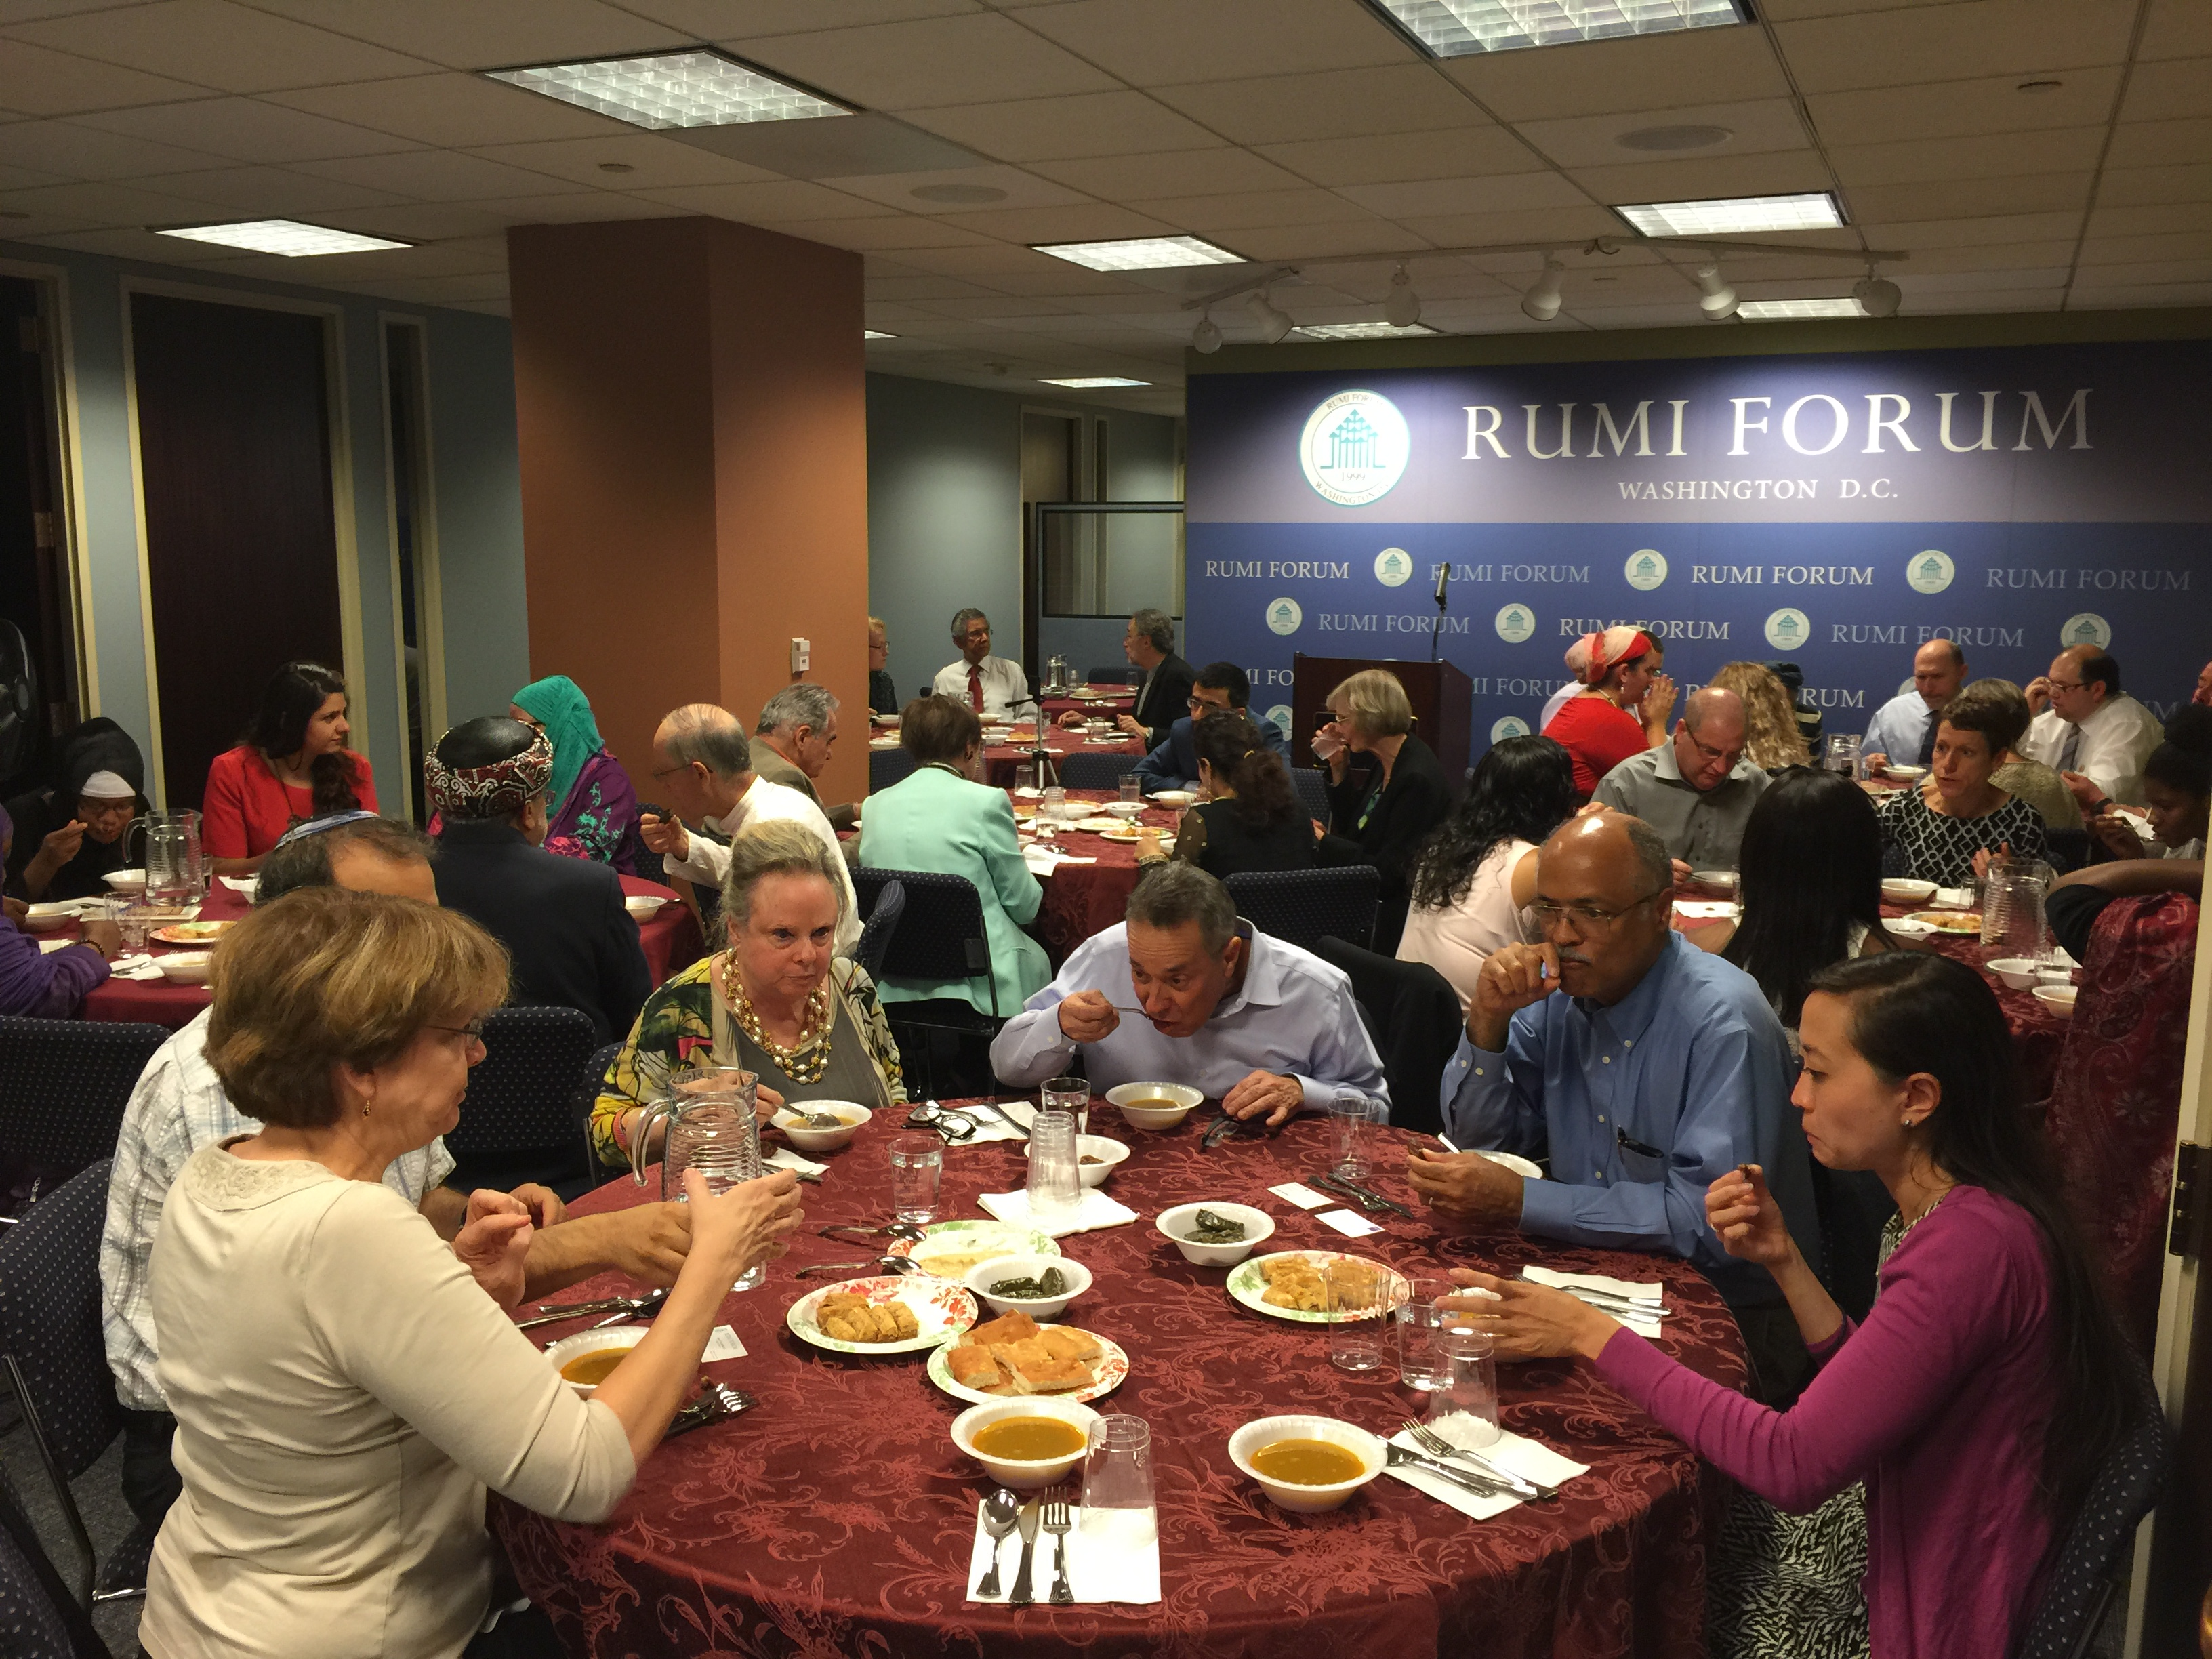 iftar with #interfaith leaders #ramadan  #dialogue #friendship #love